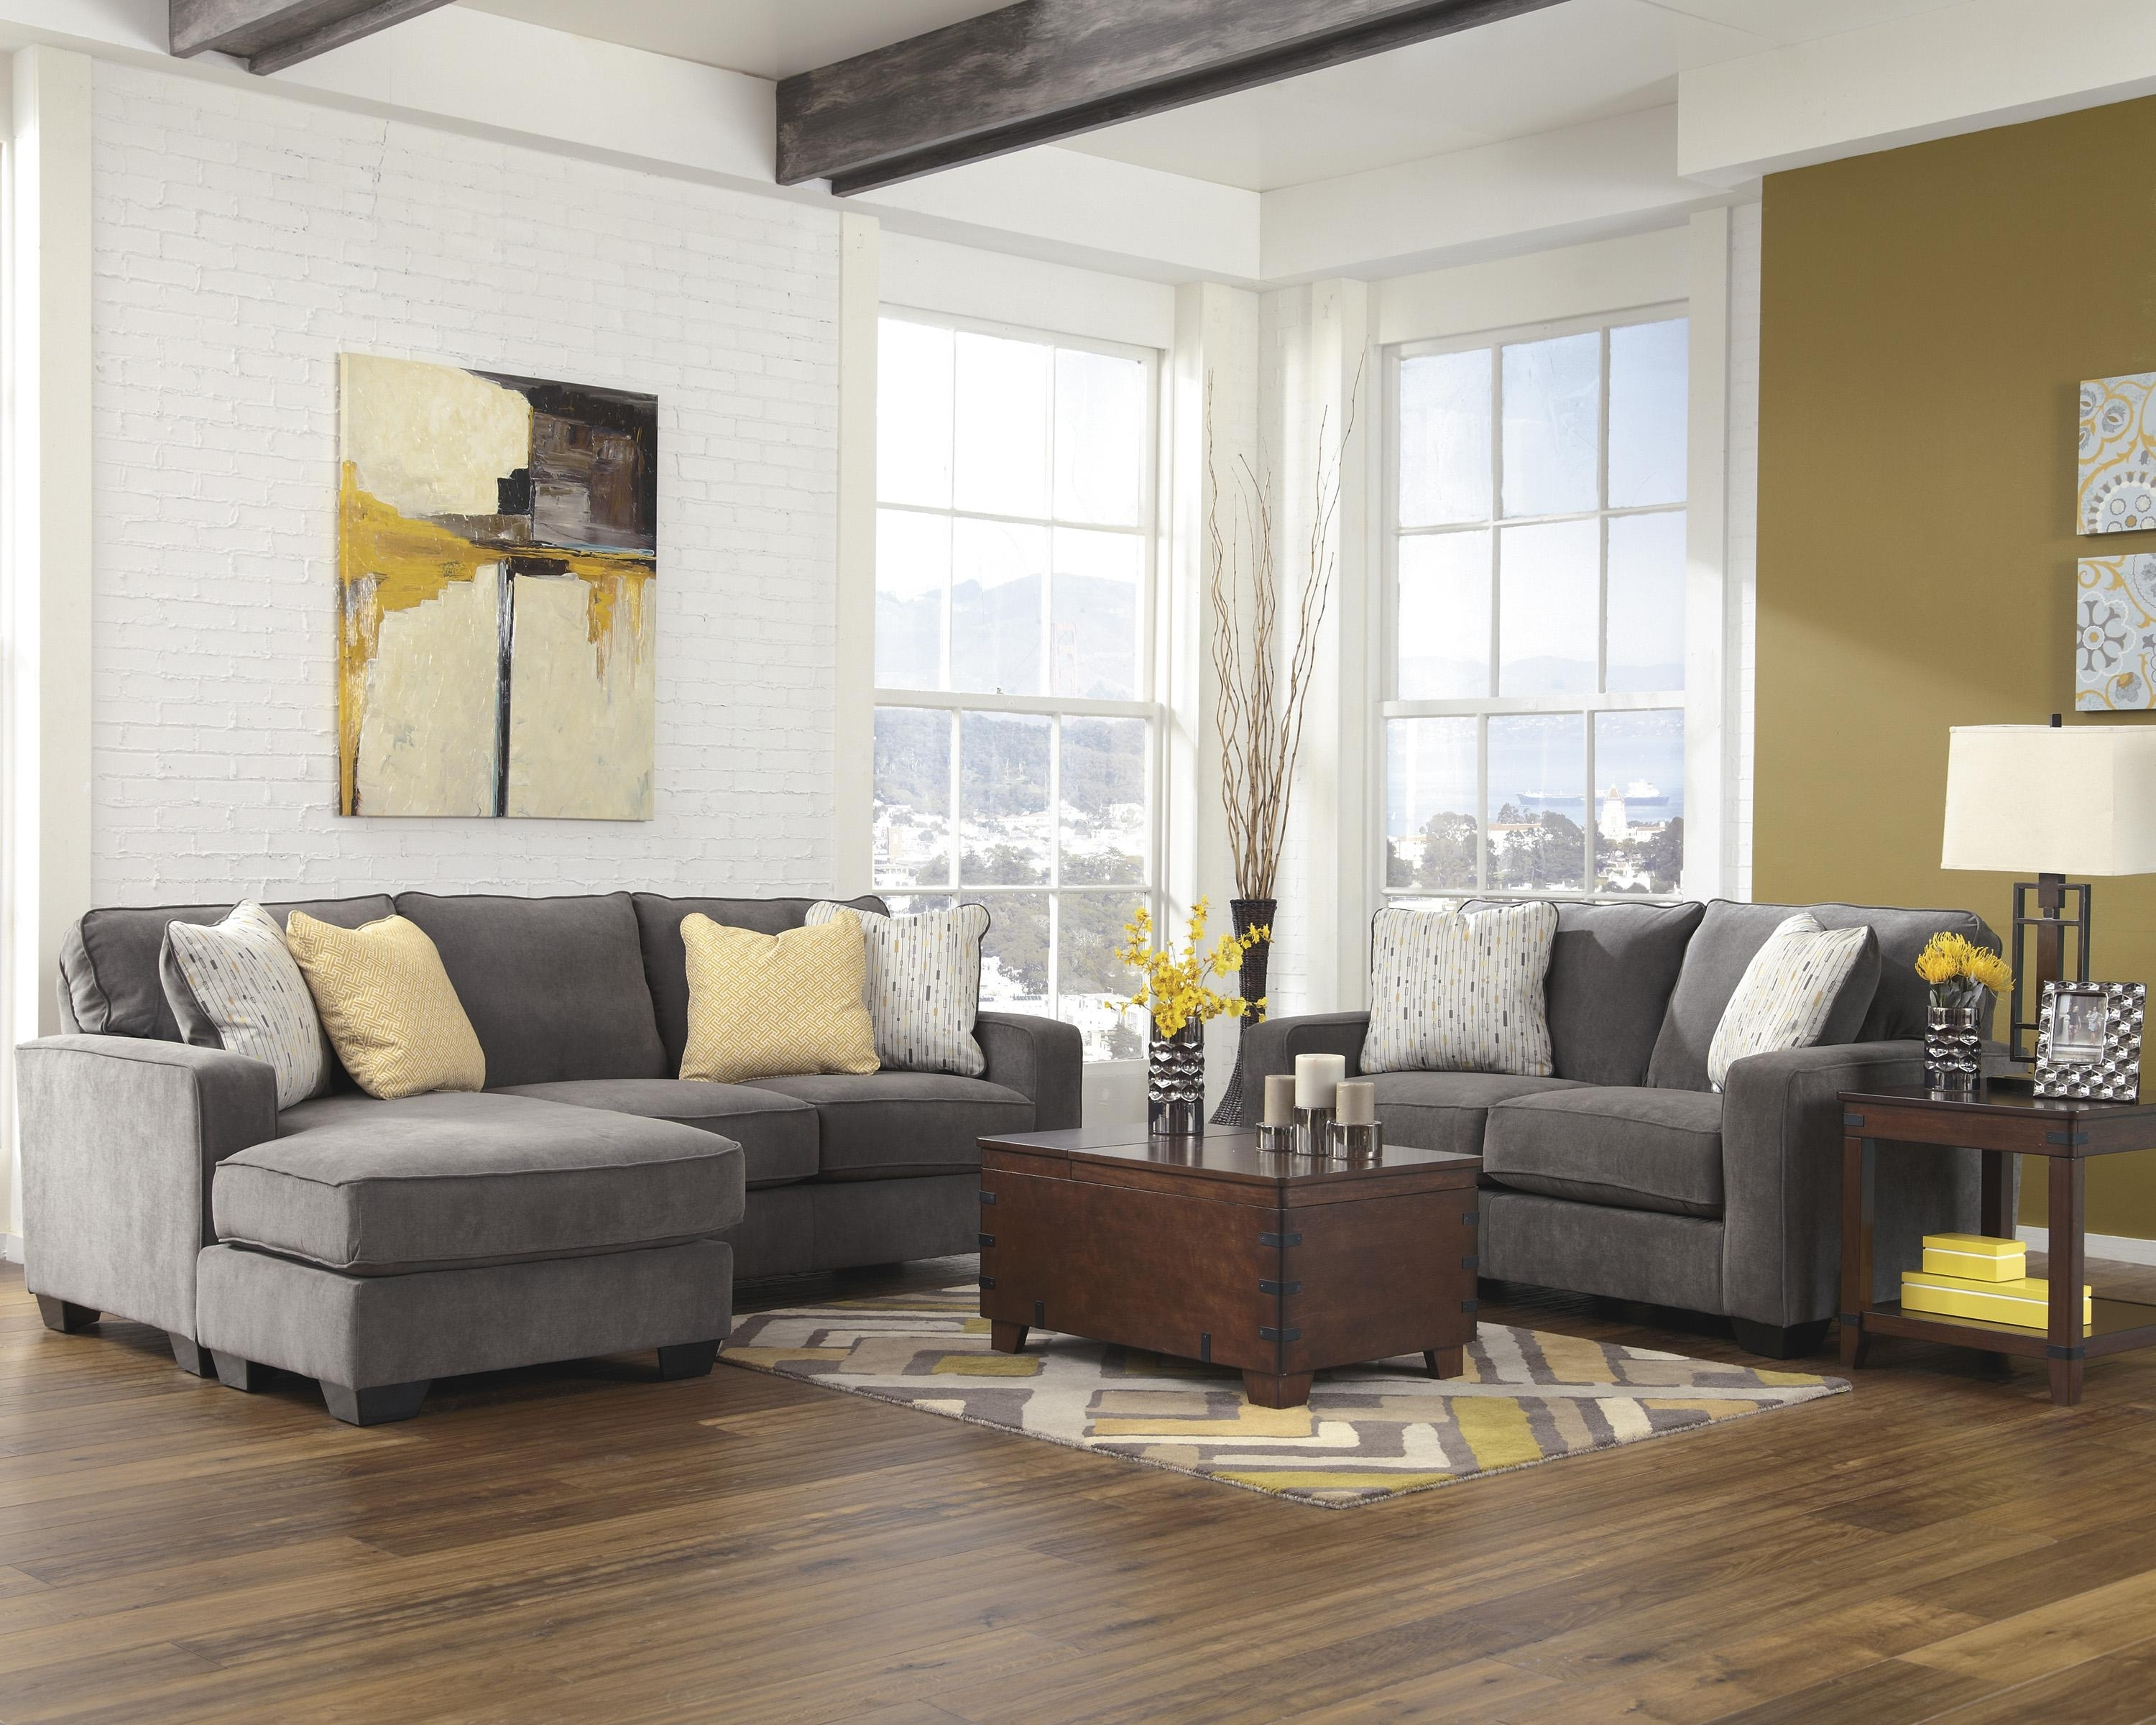 Hodan Sofas With Chaise Intended For Well Known Signature Designashley Hodan – Marble Contemporary Sofa Chaise (View 7 of 15)